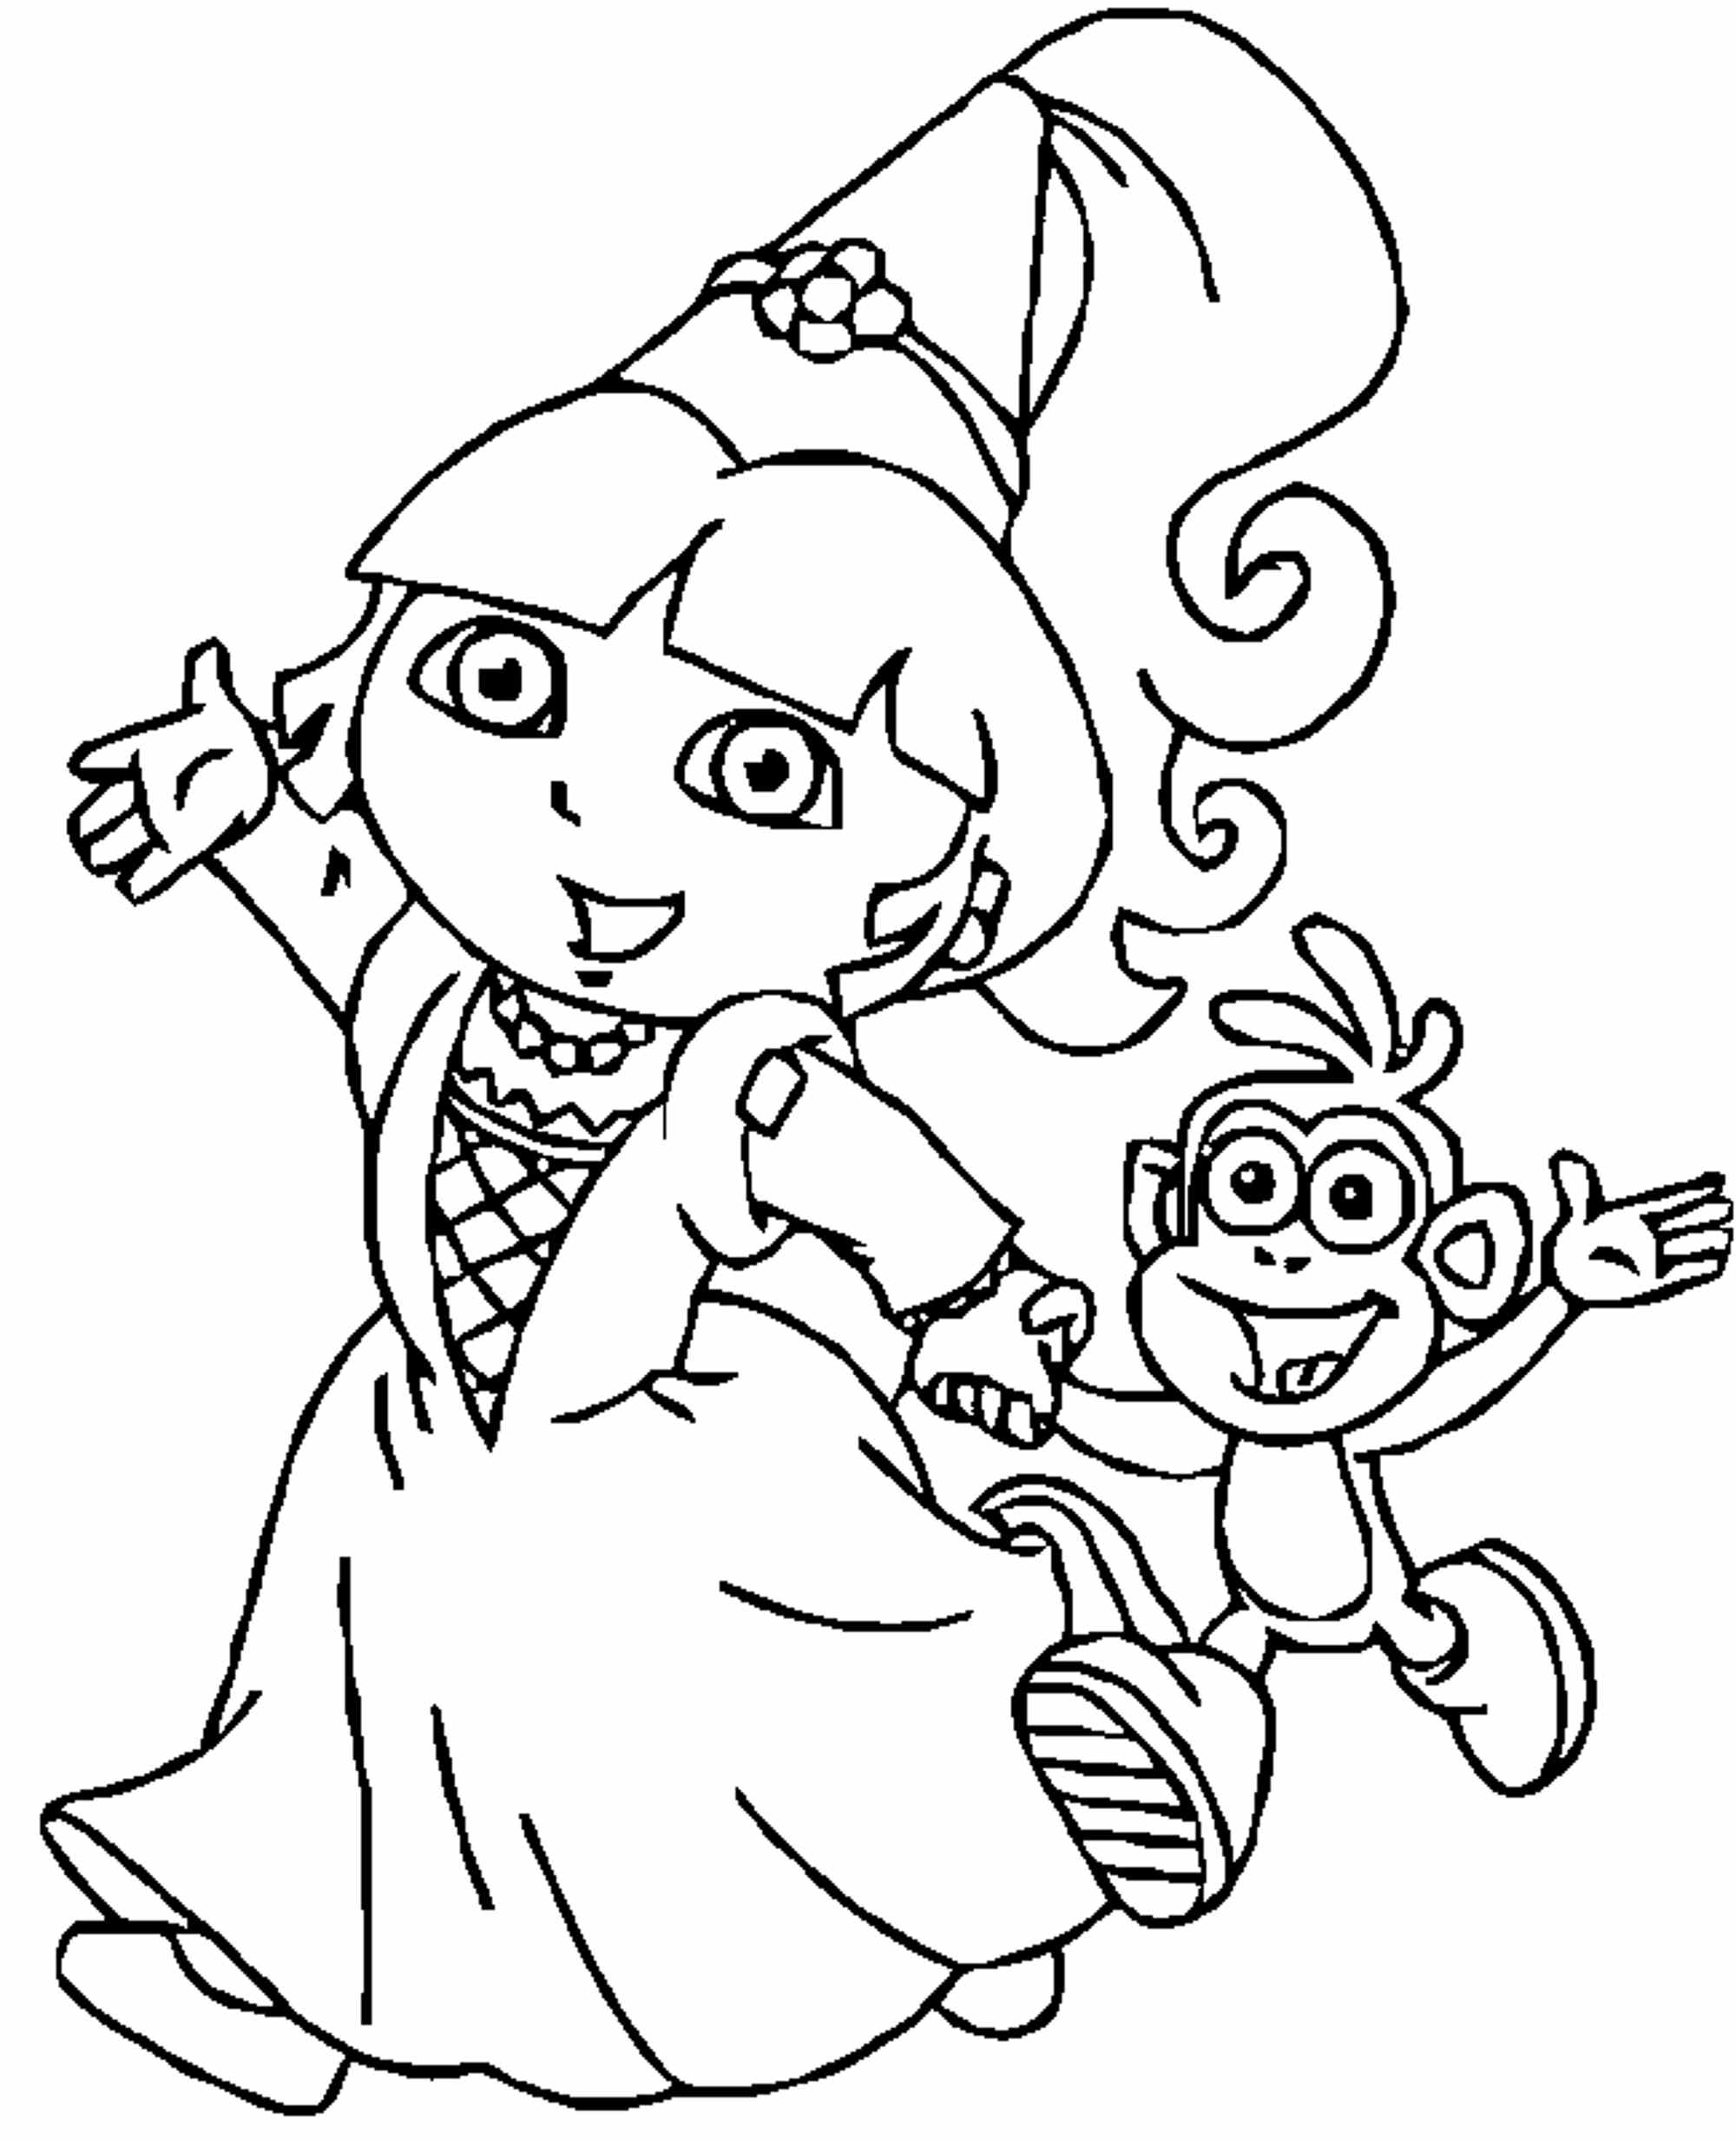 dora coloring picture dora coloring pages only coloring pages picture coloring dora